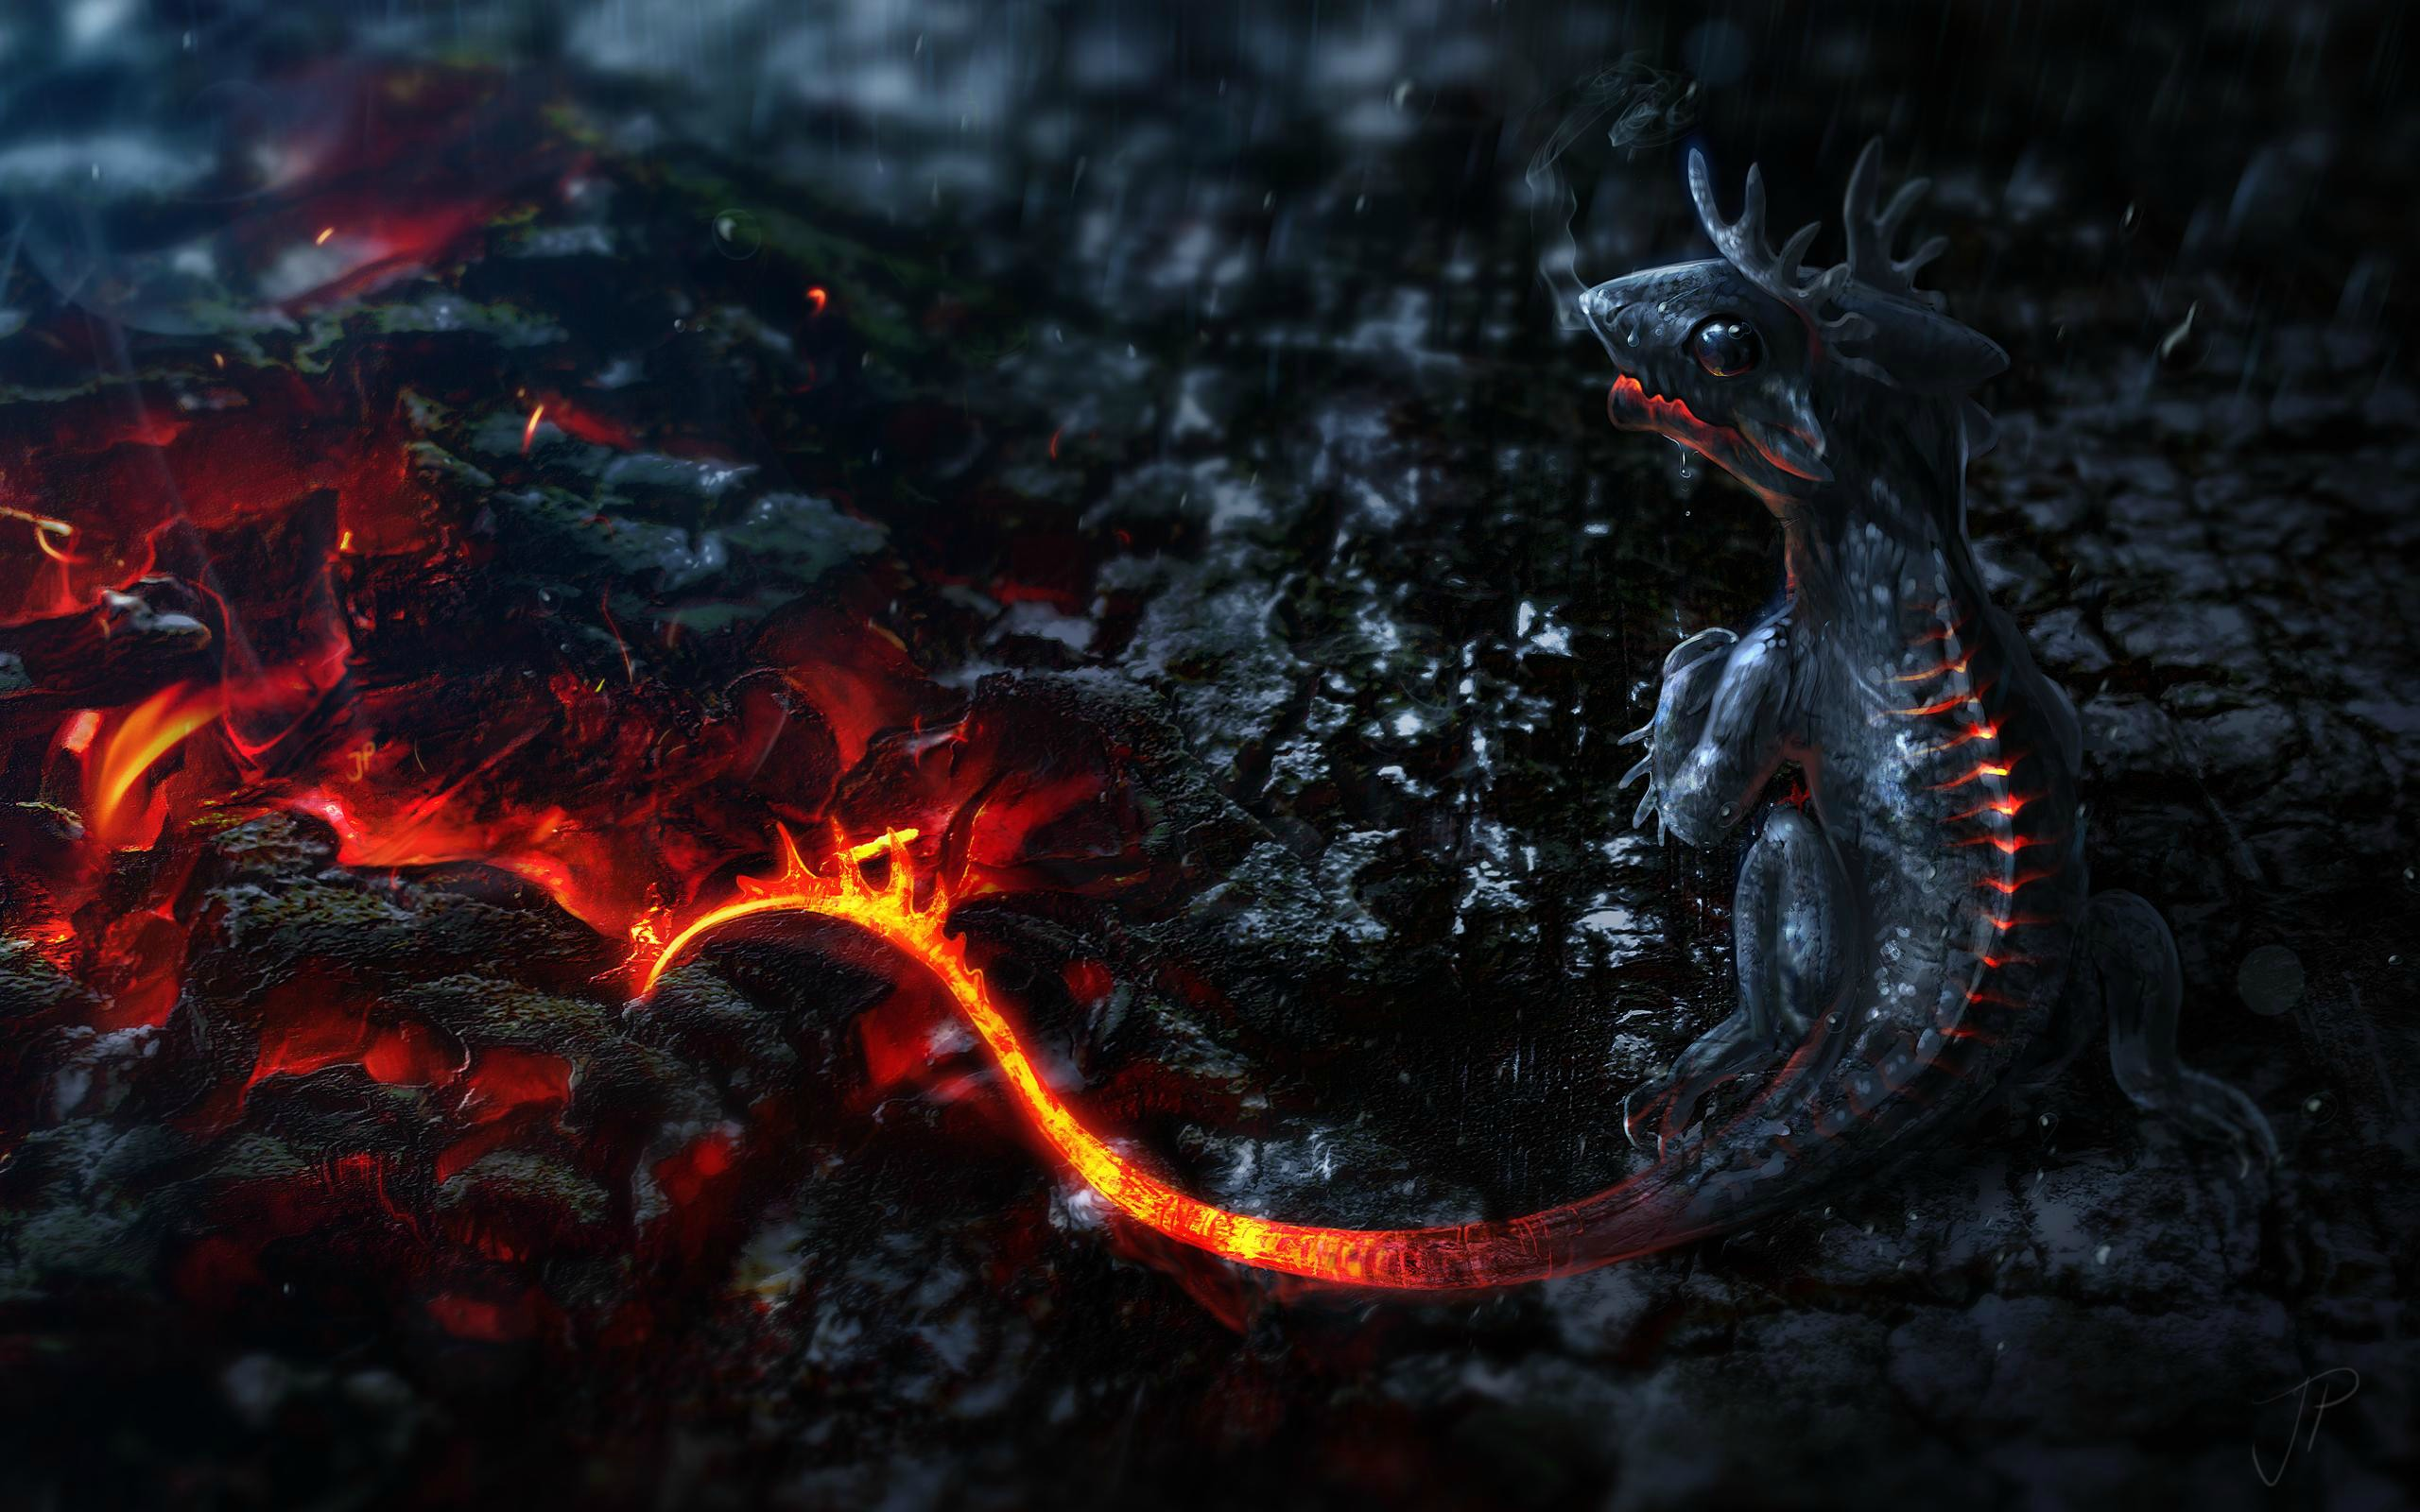 Wallpaper de dragones